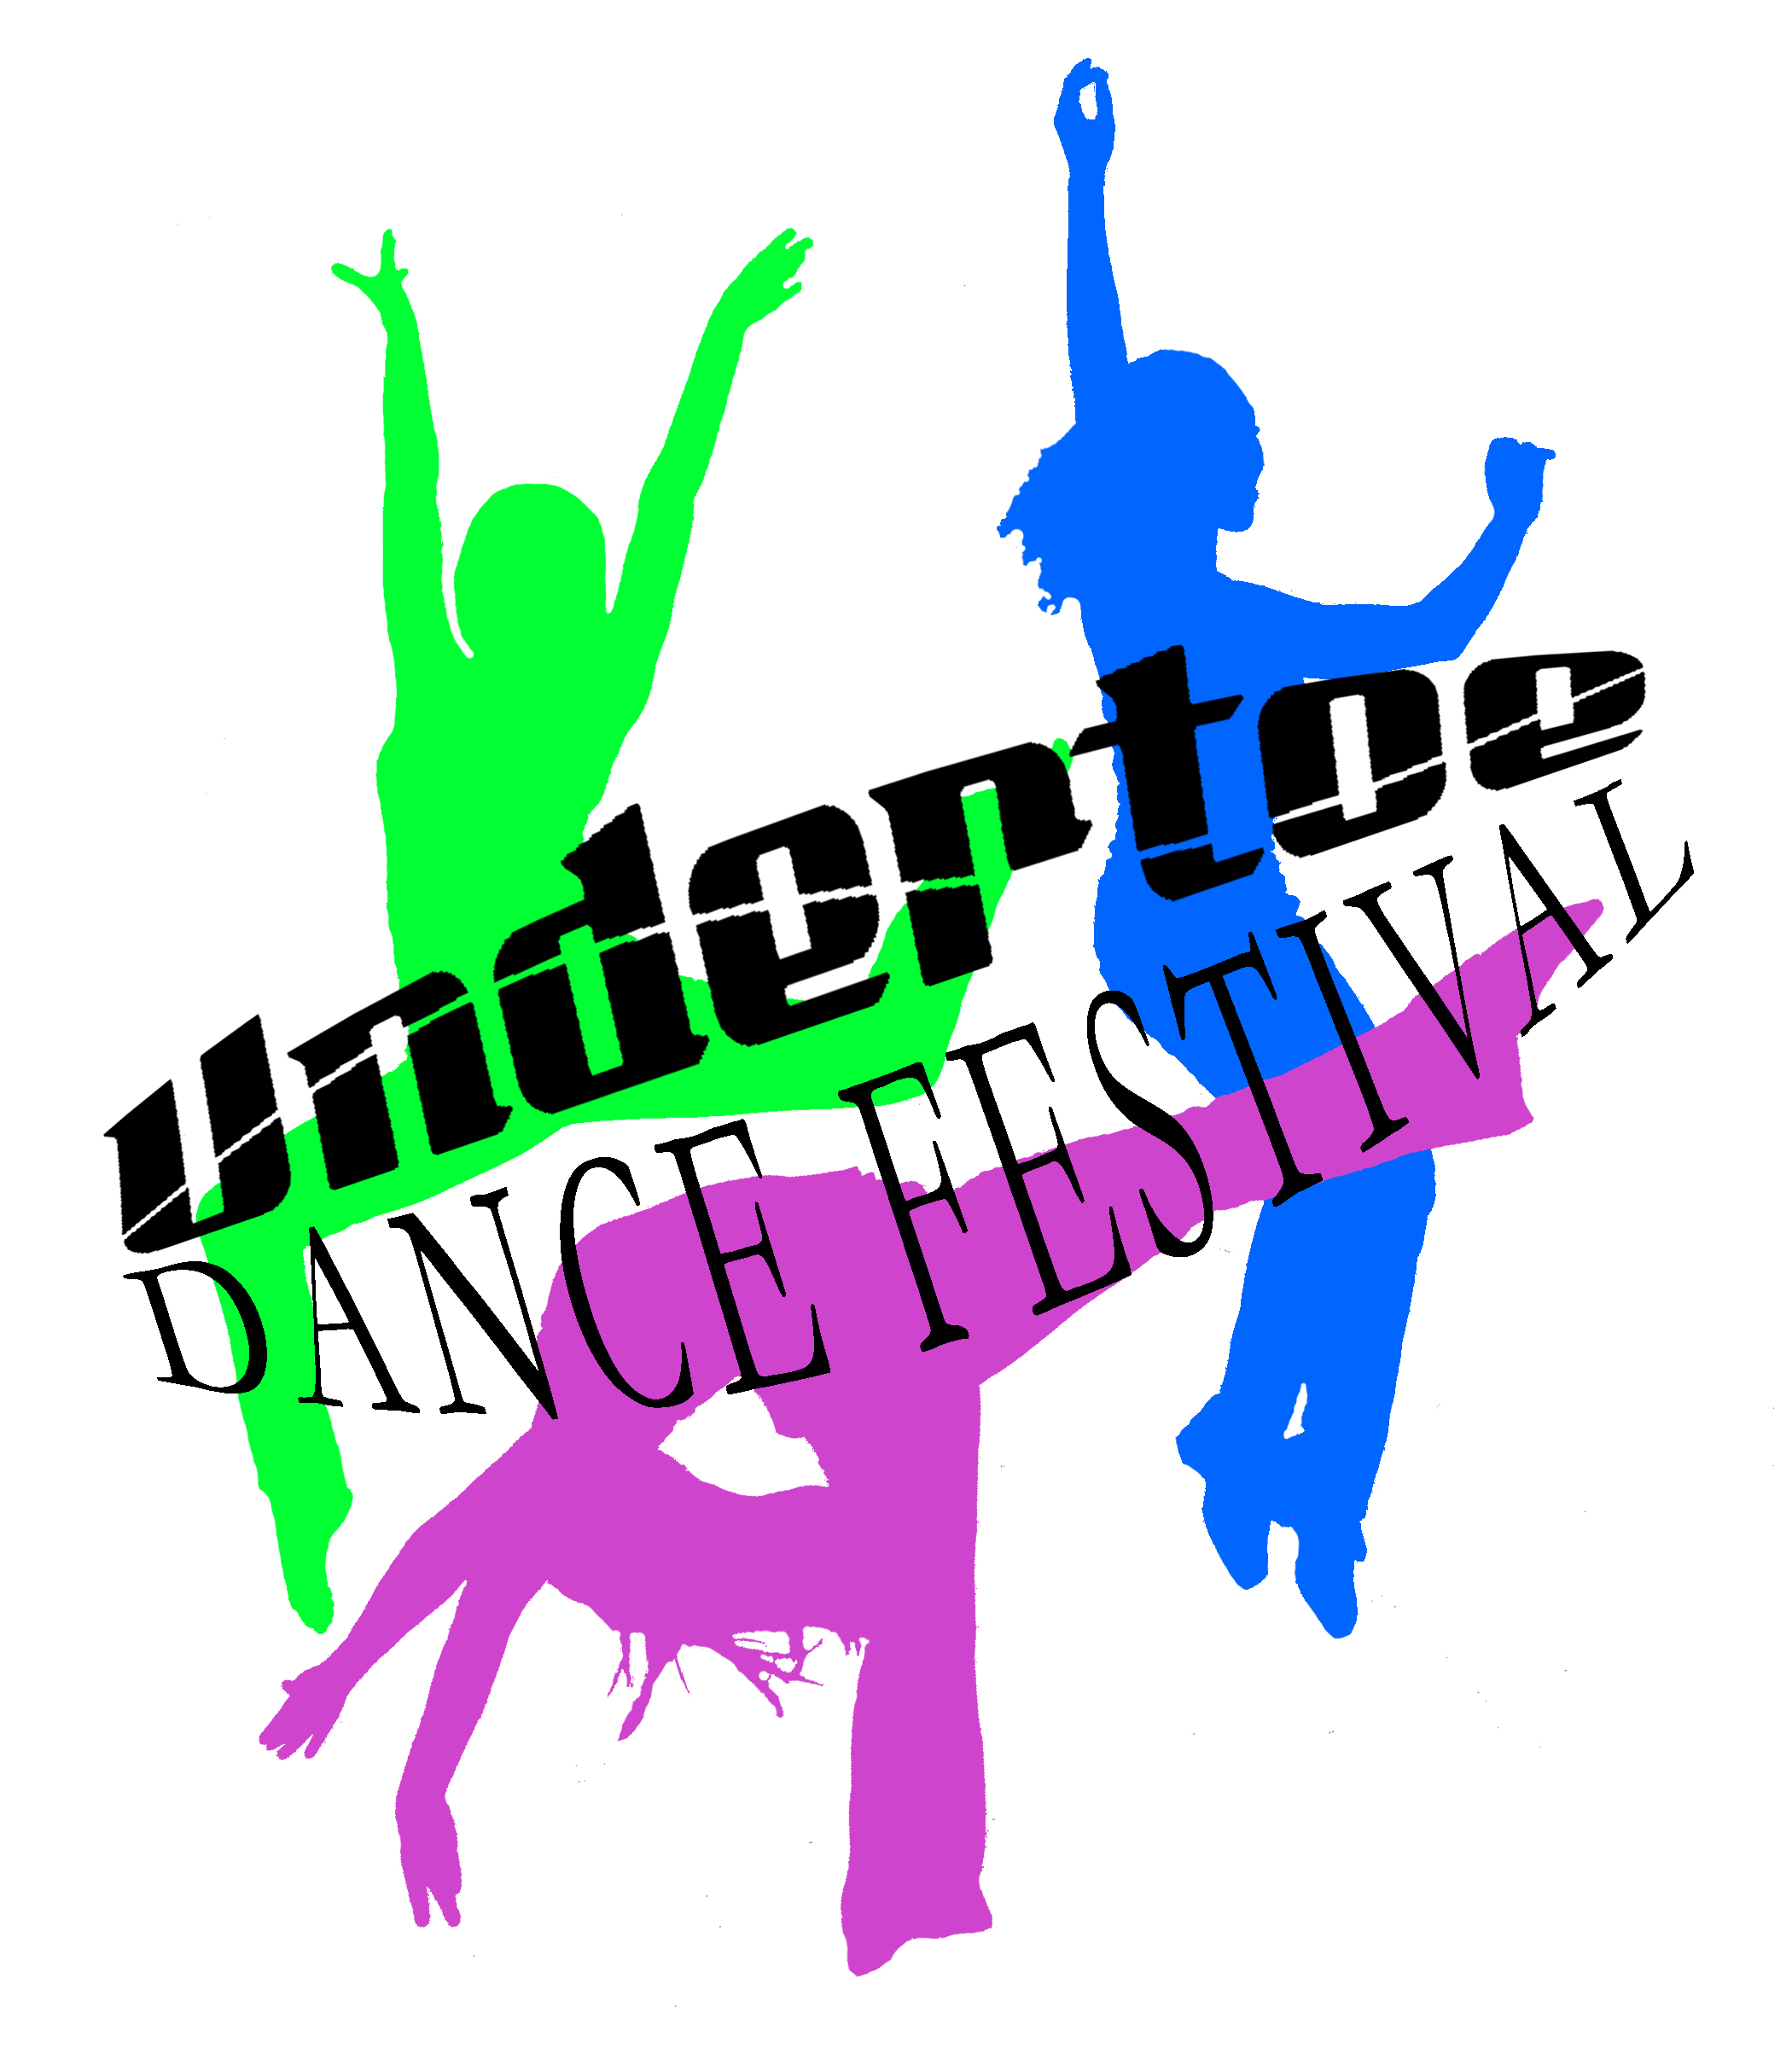 Undertoe Dance Festival   Cold, Cold, Heart / Can't Help It    92nd St Y